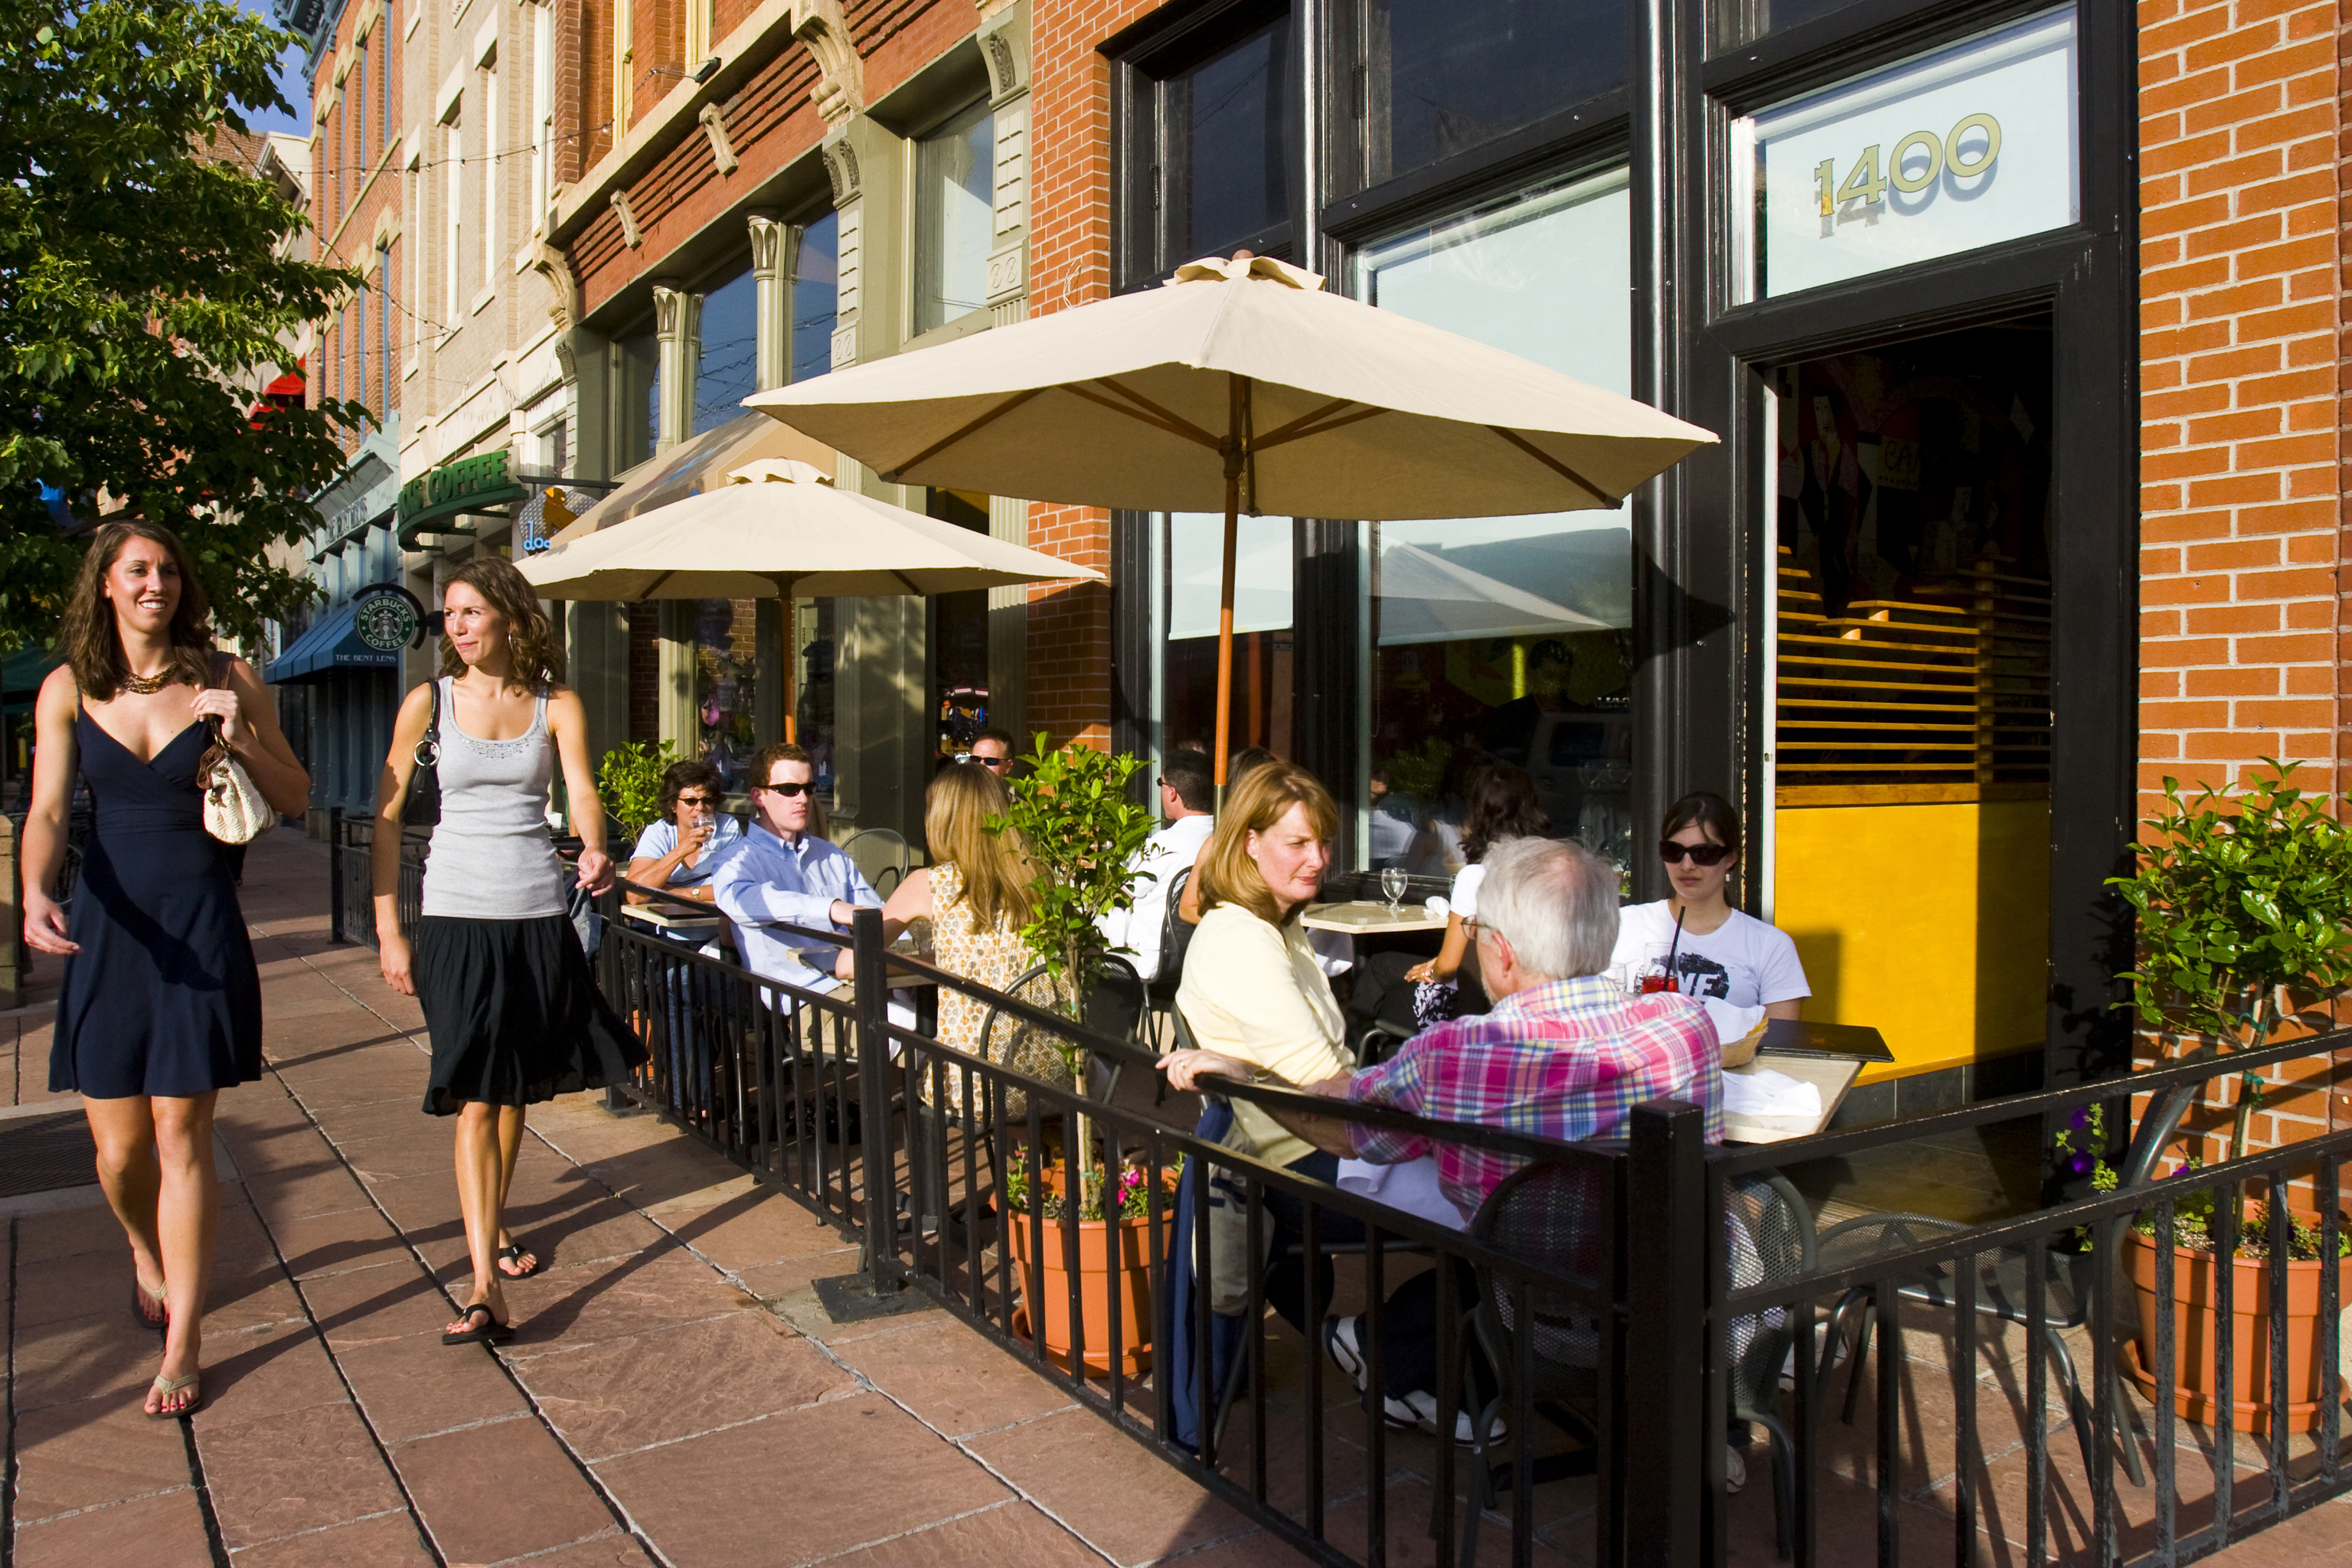 An Afternoon Walk Past Diners On Larimer Street In